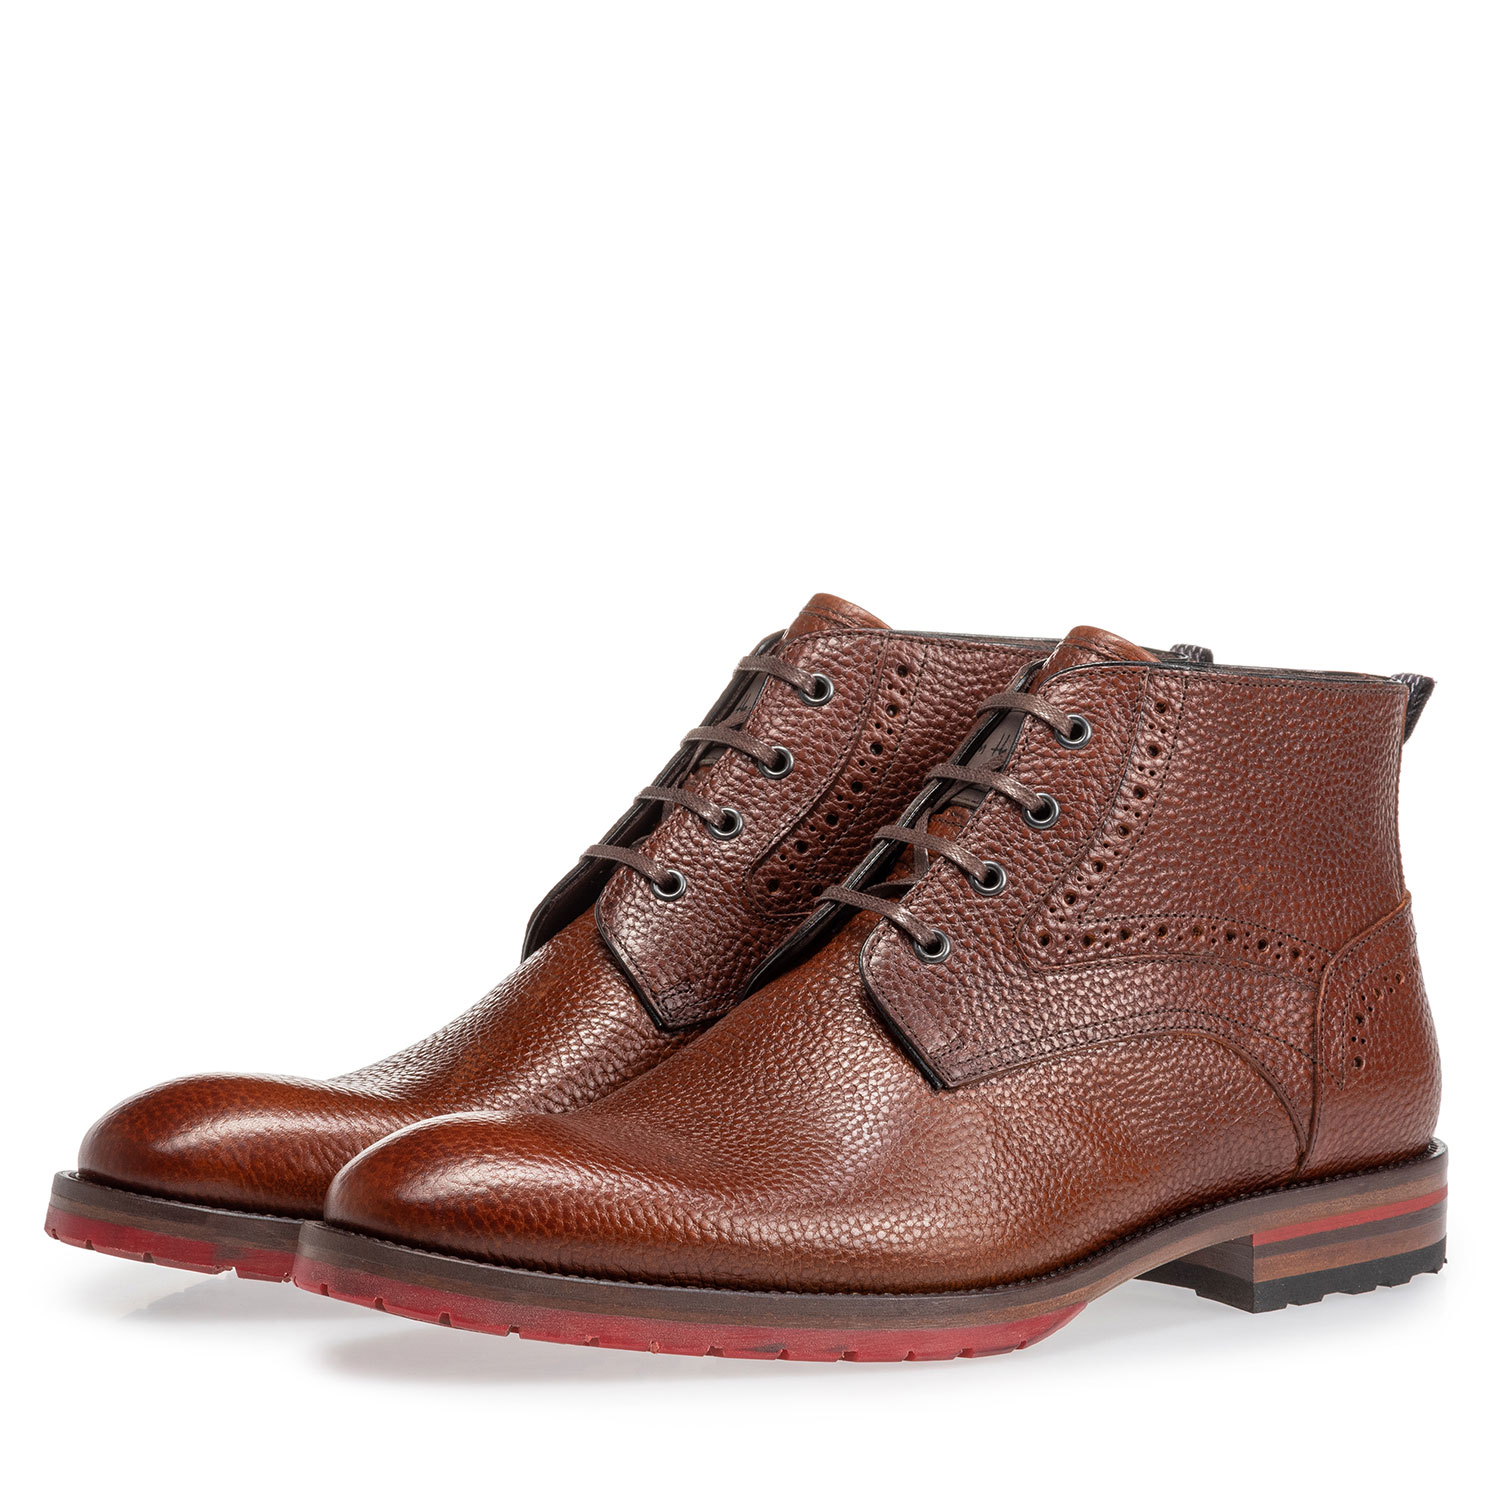 10317/25 - Lace boot structured leather cognac